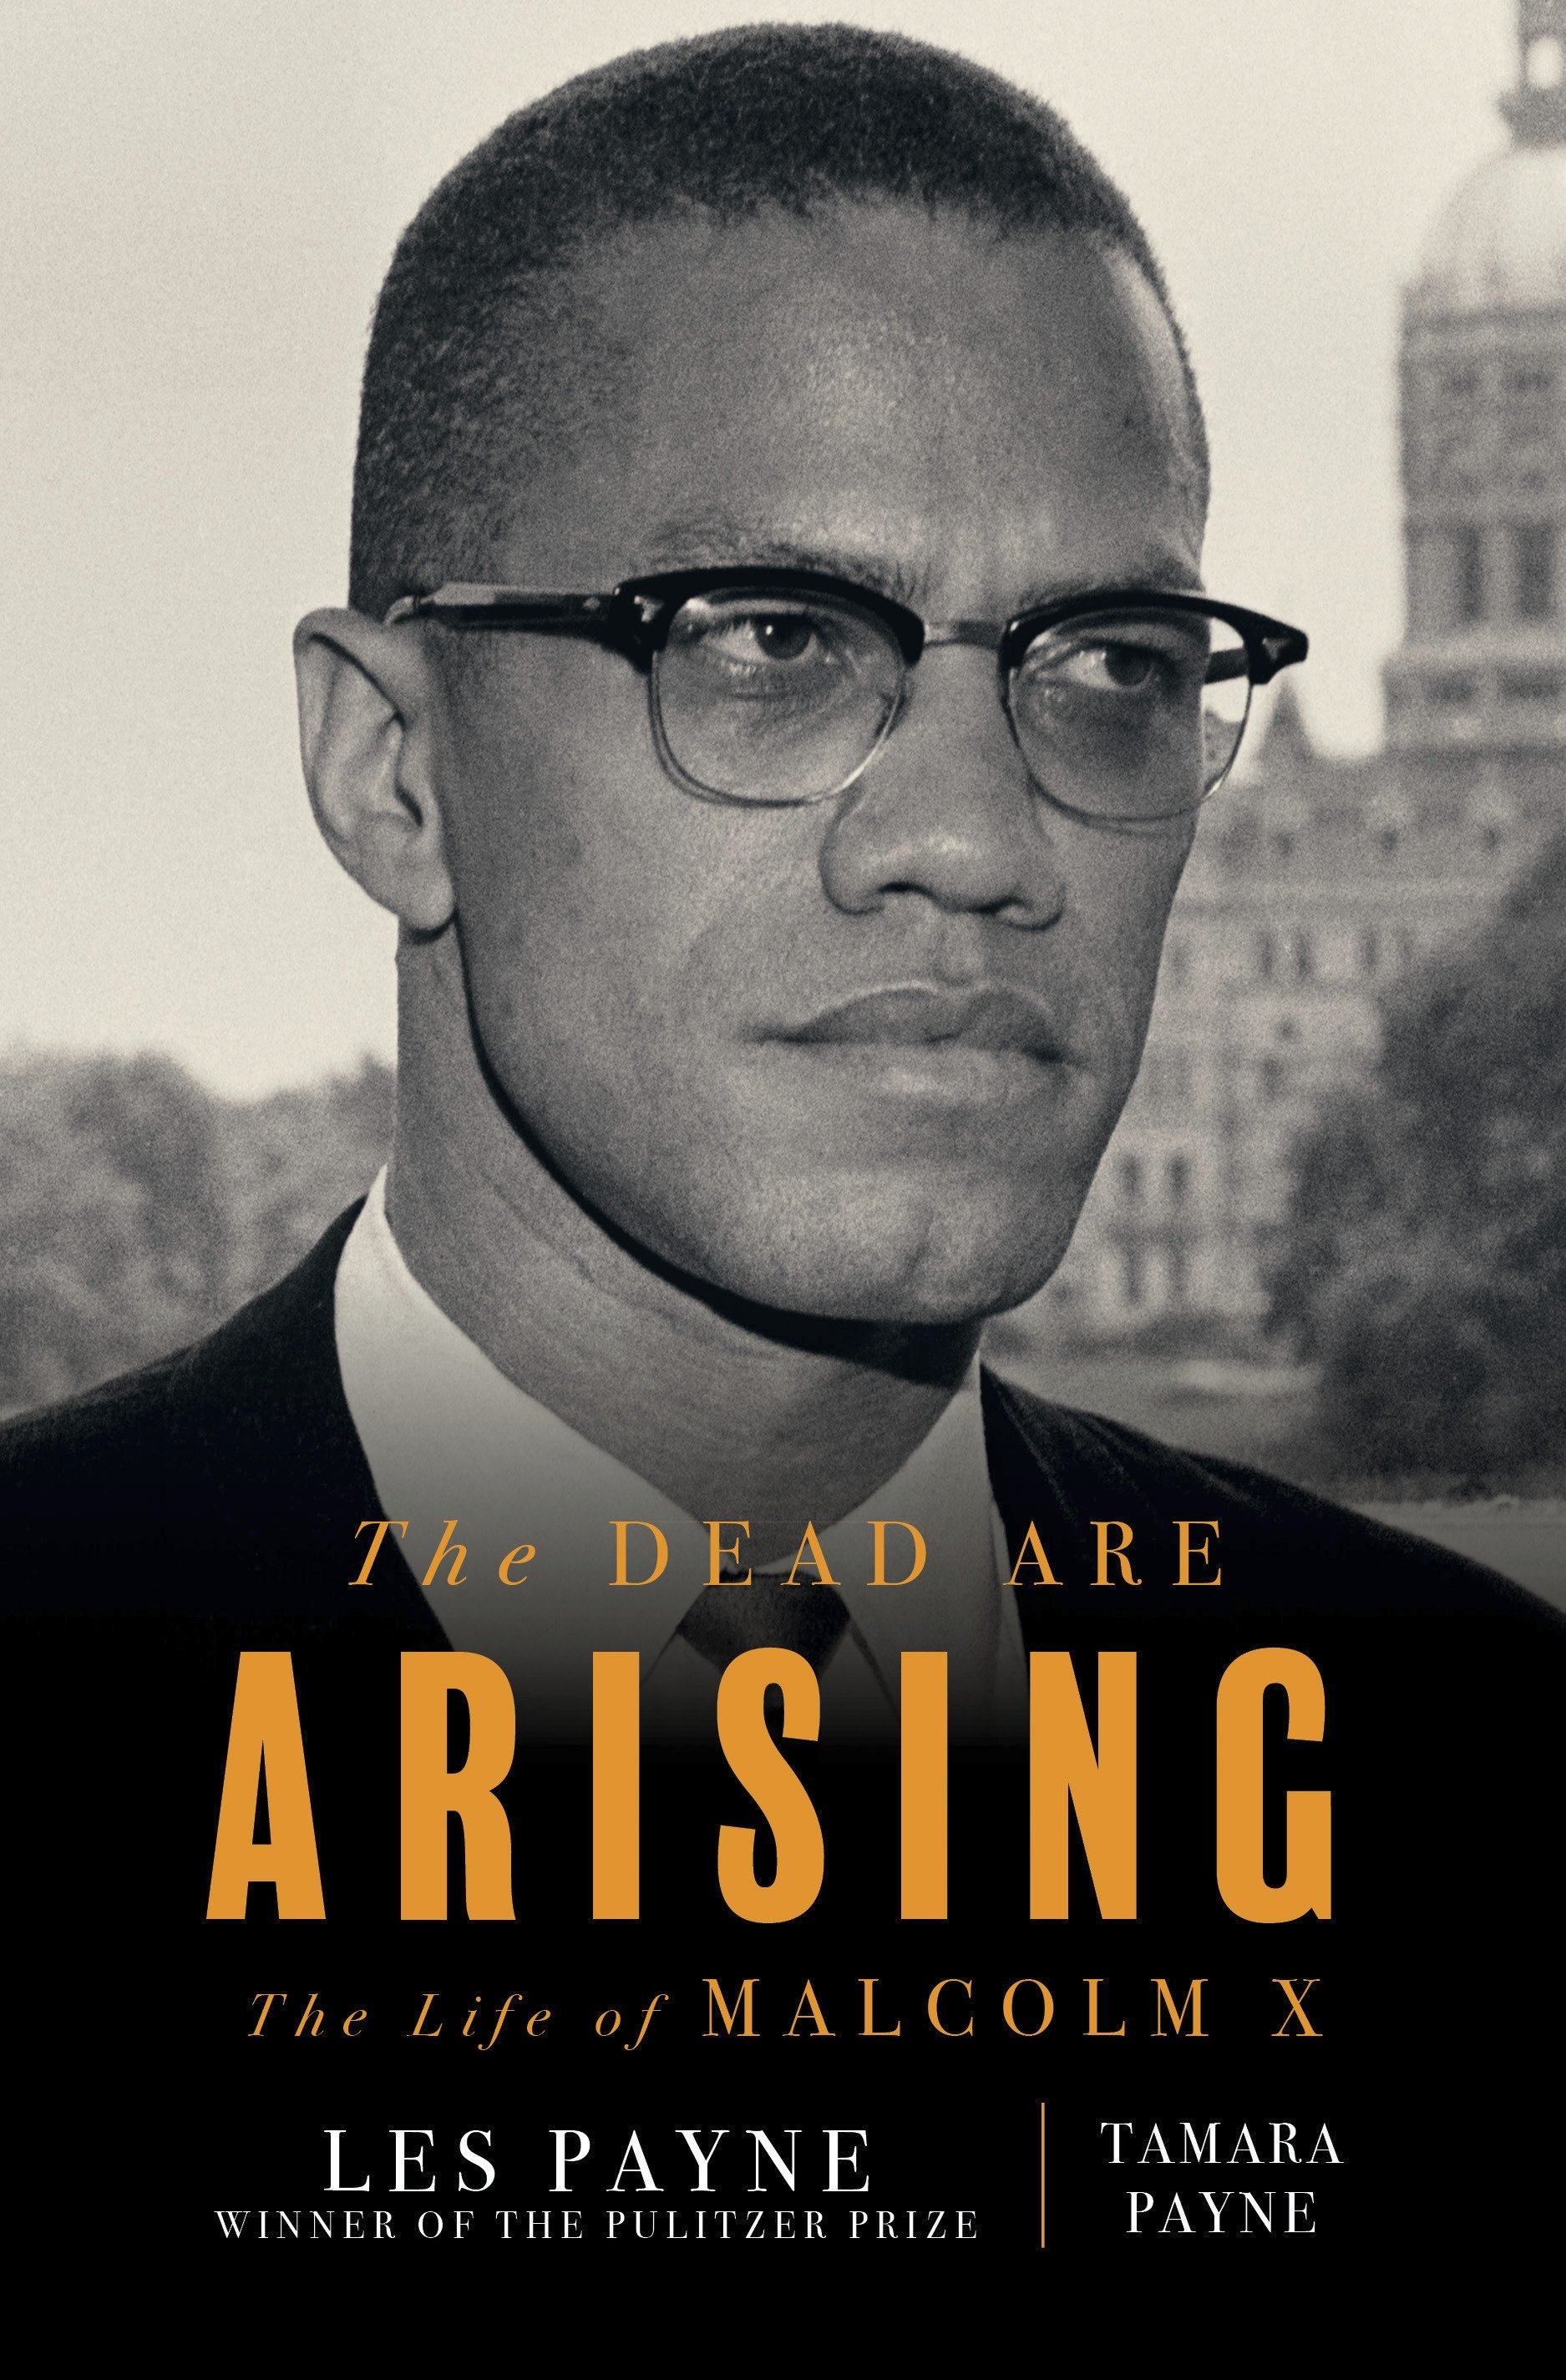 The cover image of'The Dead Are Arising' co-authored by Tamara Payne and her father Les Payne, winner of the Pulitzer Prize for Biography, shows the iconic Malcolm X.(Liveright via AP)